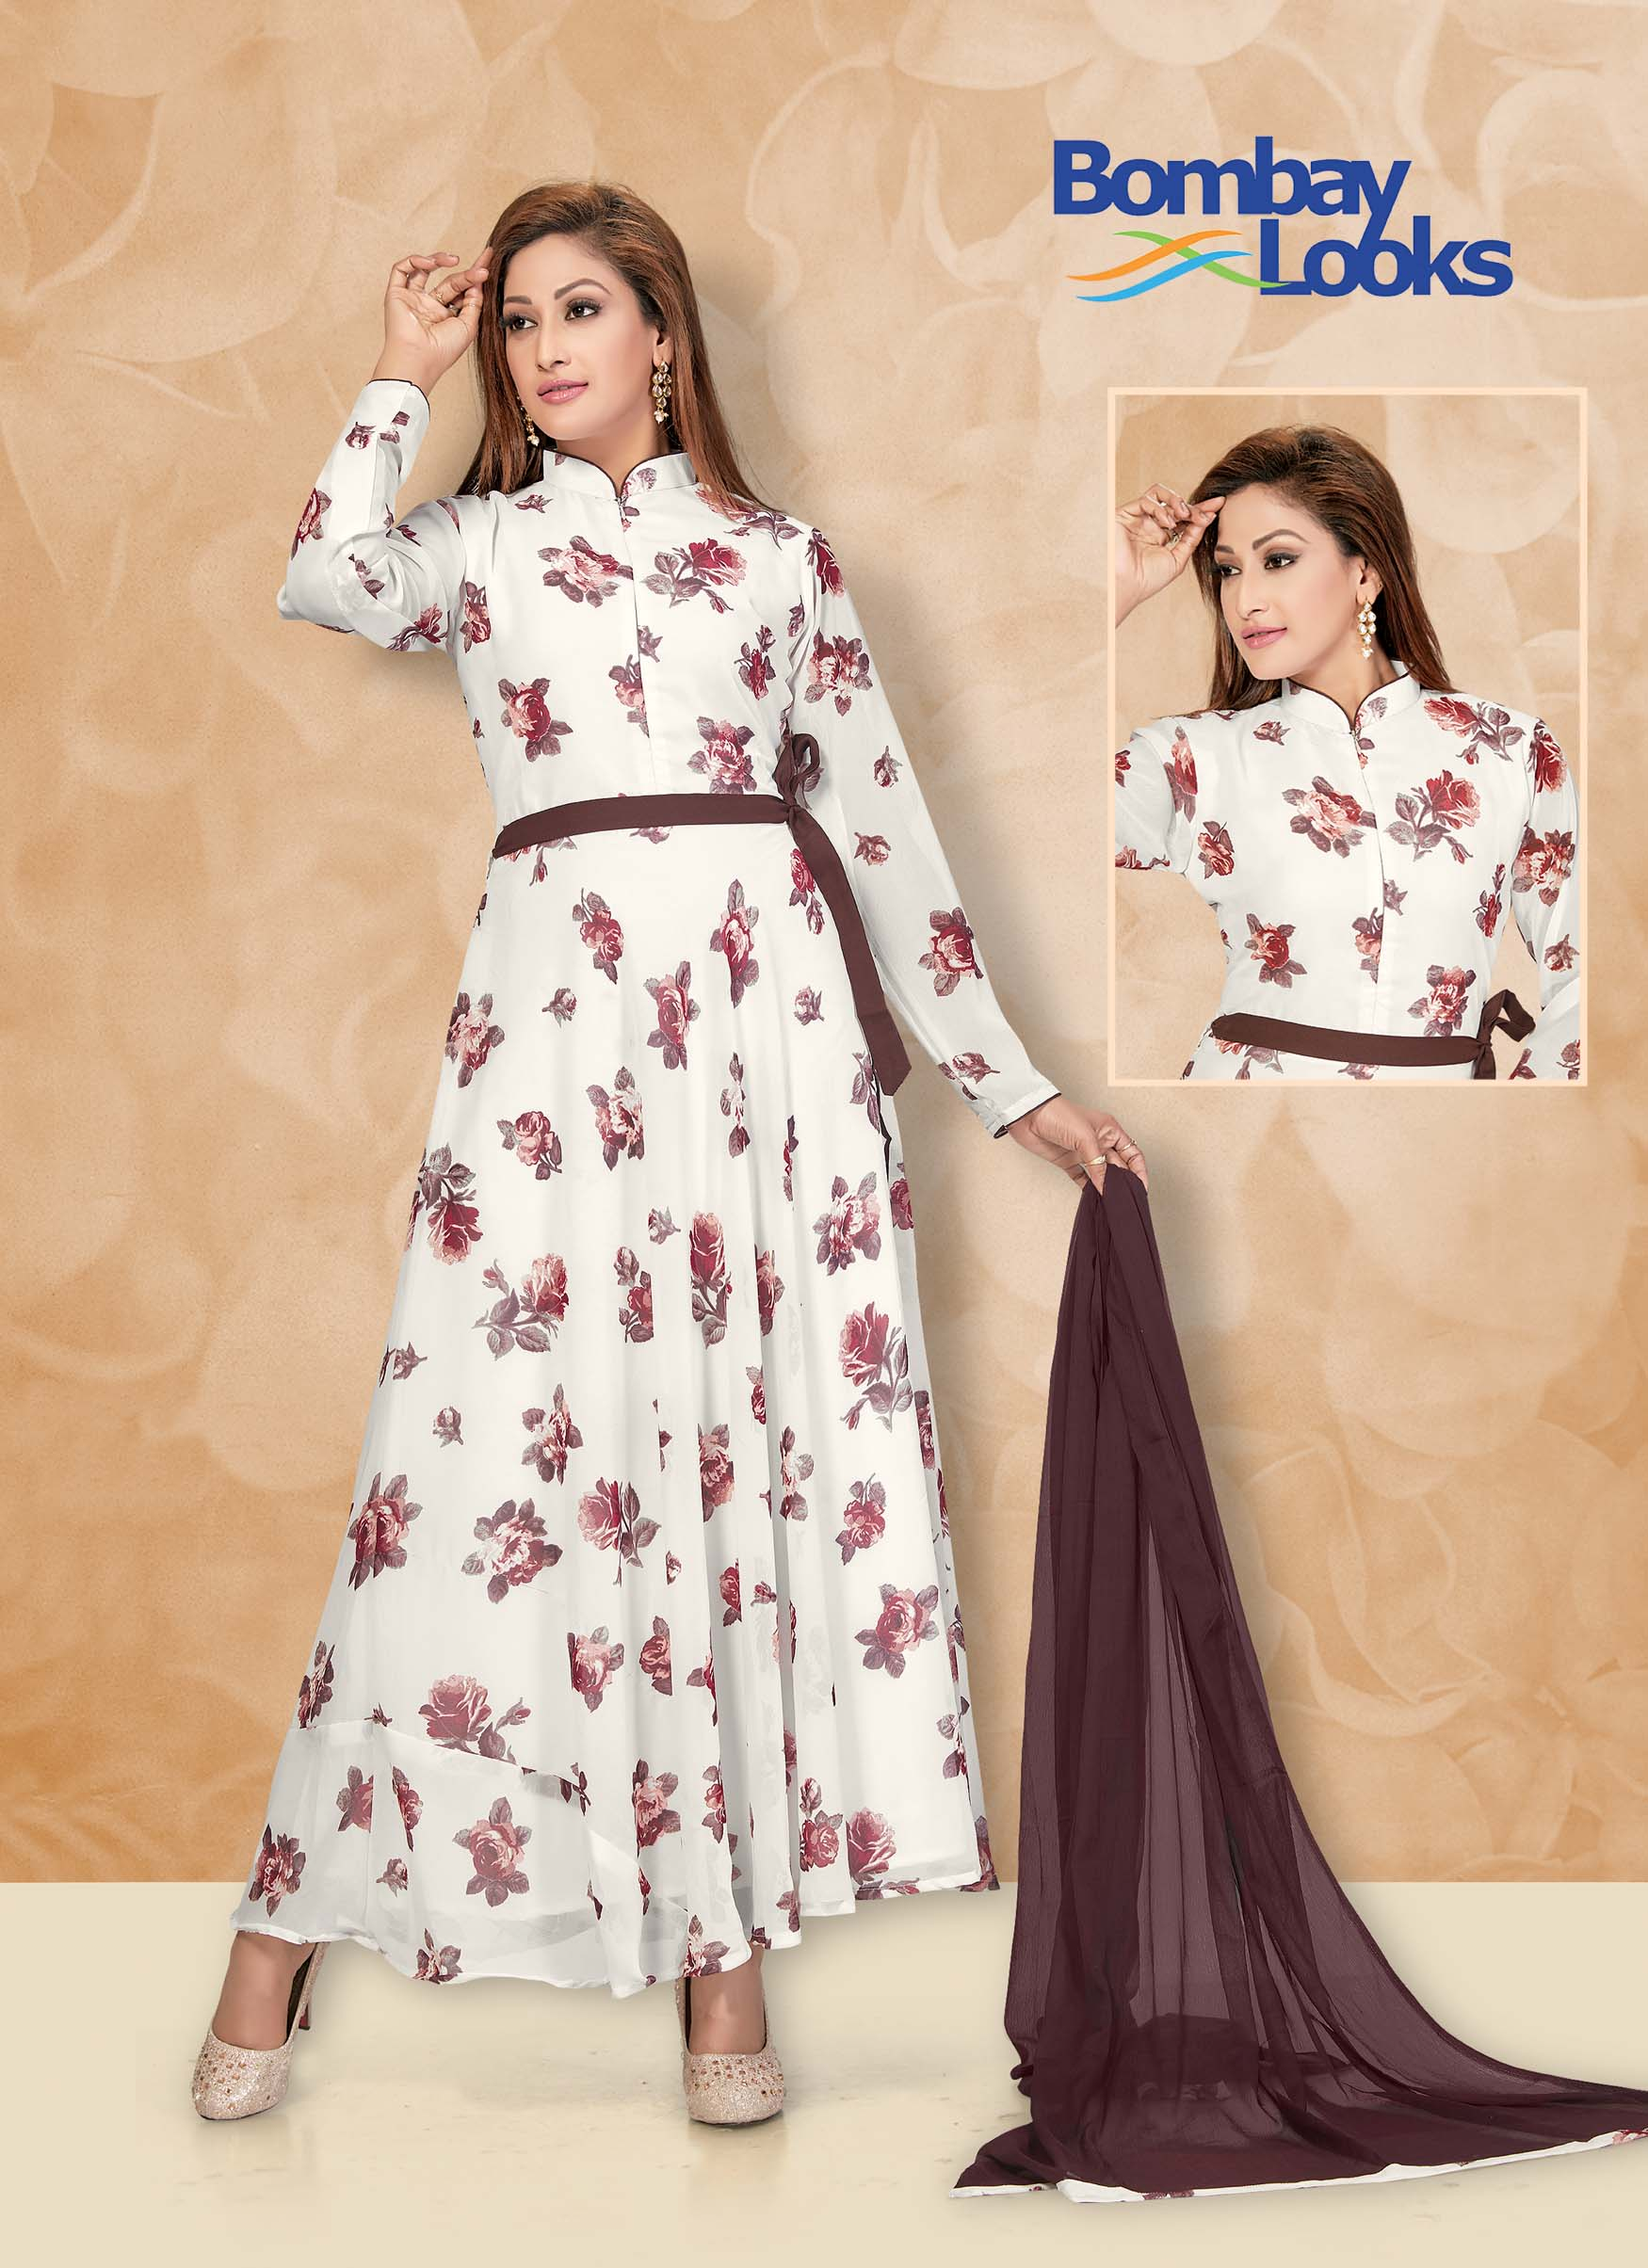 Off-white georgette suit in floral print with contrast dupatta